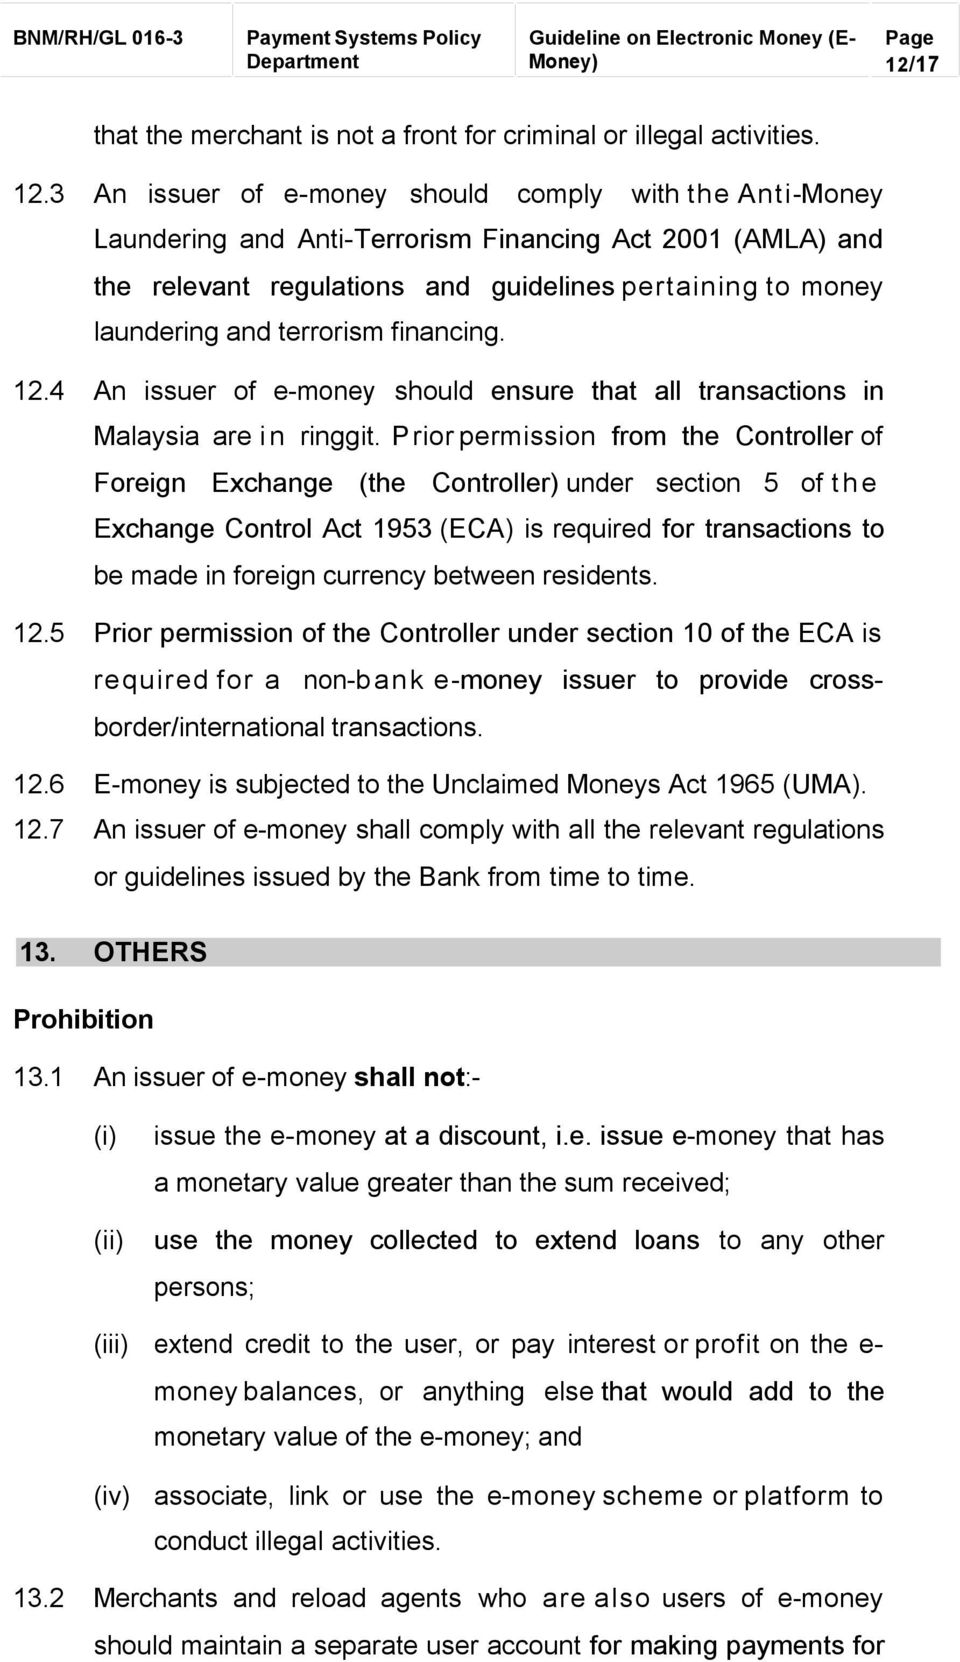 terrorism financing. 12.4 An issuer of e-money should ensure that all transactions in Malaysia are in ringgit.